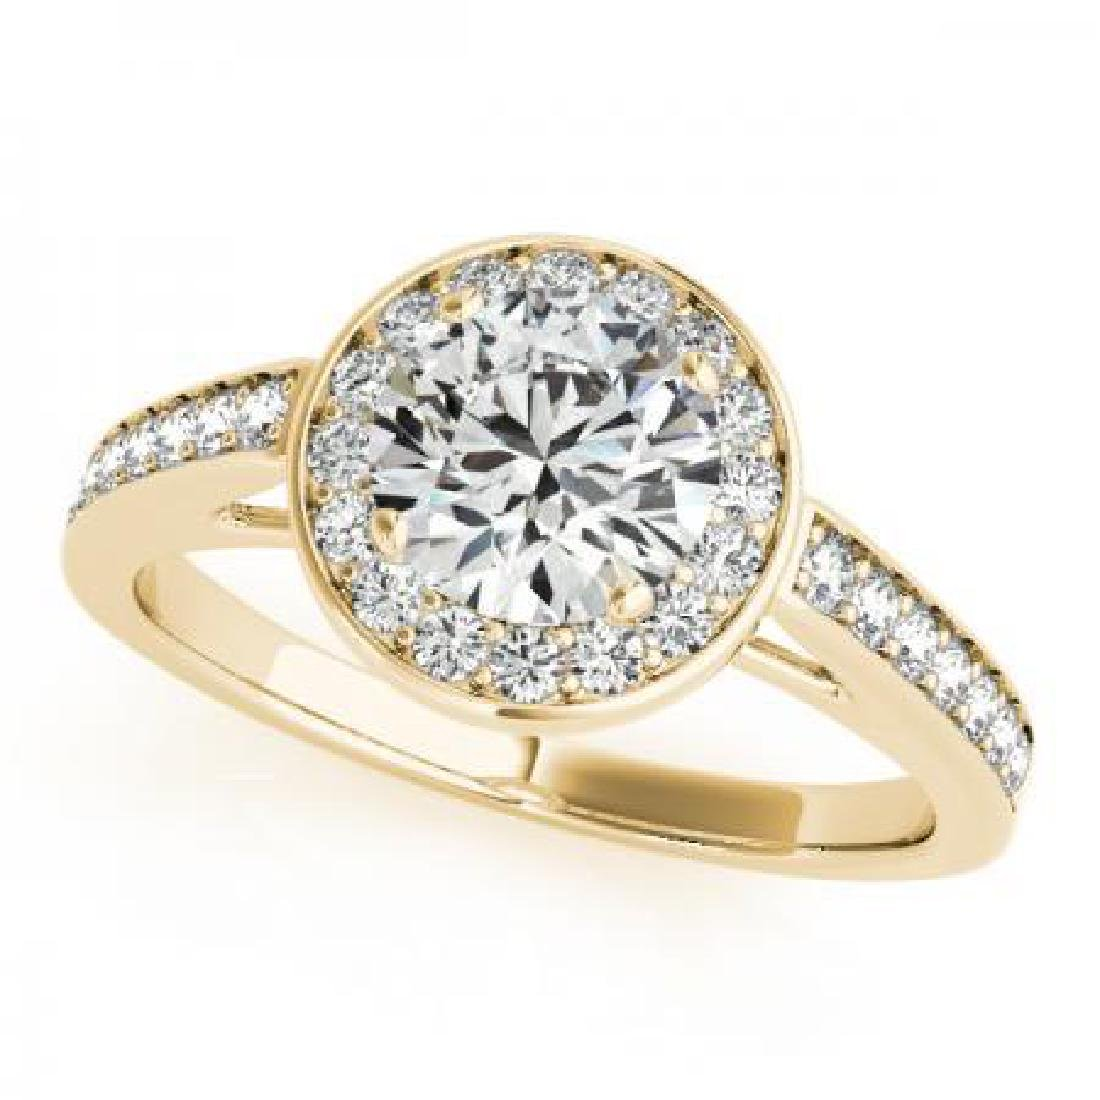 CERTIFIED 18K YELLOW GOLD .87 CT G-H/VS-SI1 DIAMOND HAL